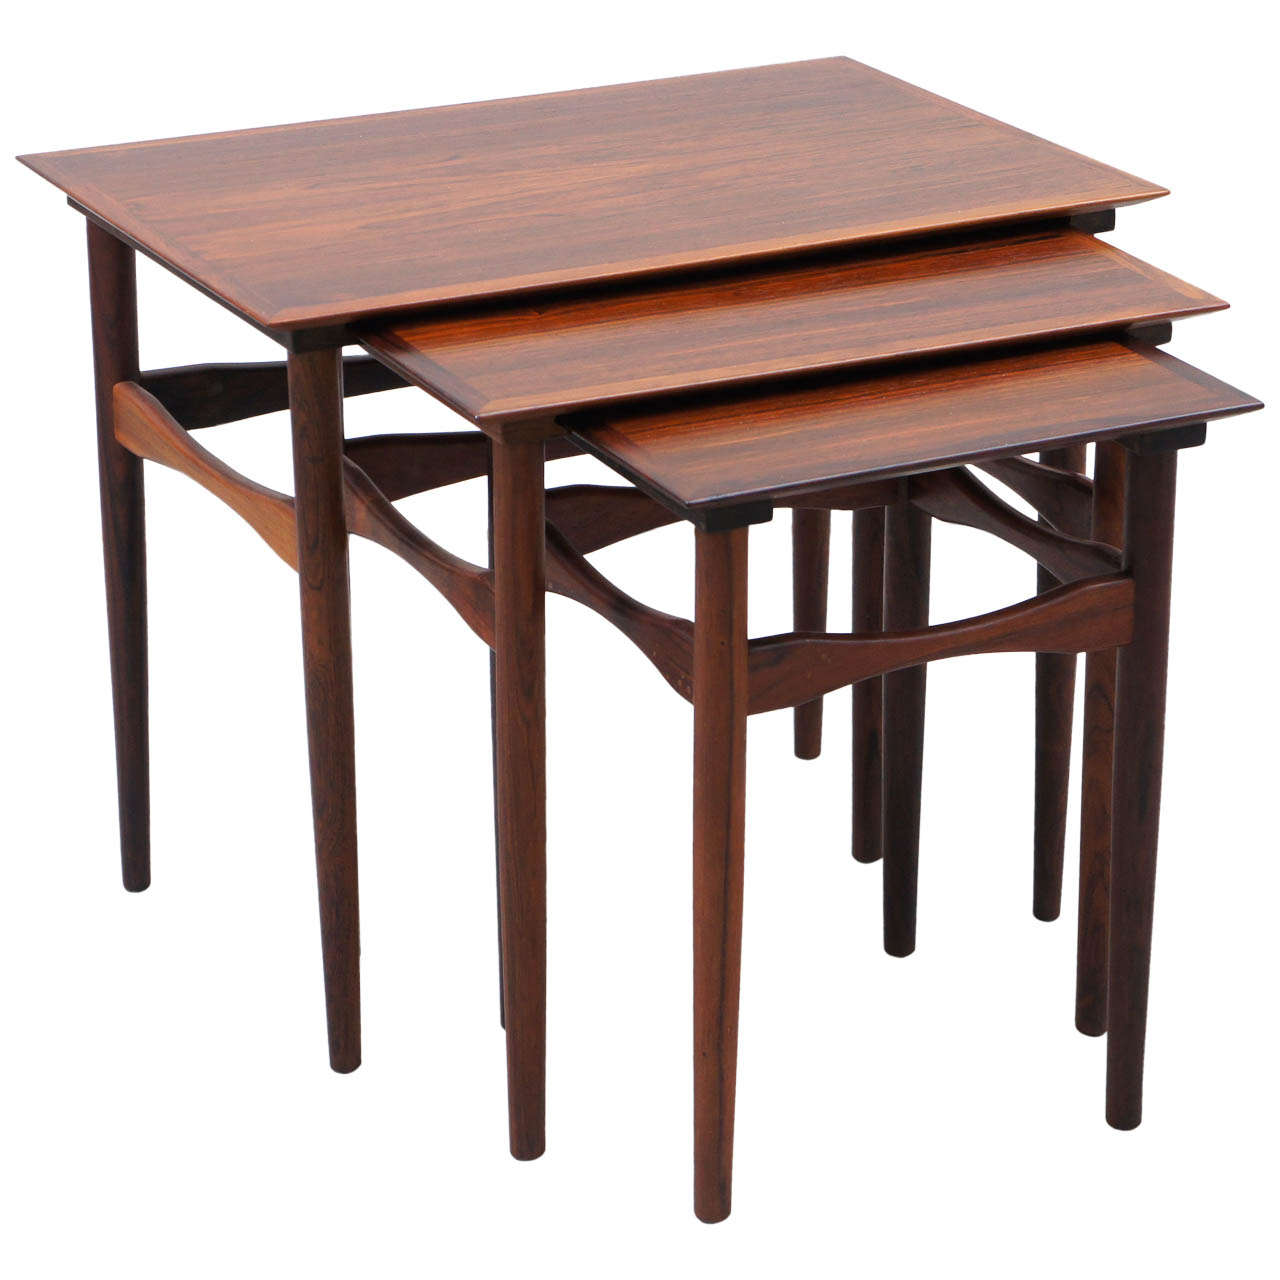 Exceptional Mid Century Danish Rosewood Nesting Tables 1